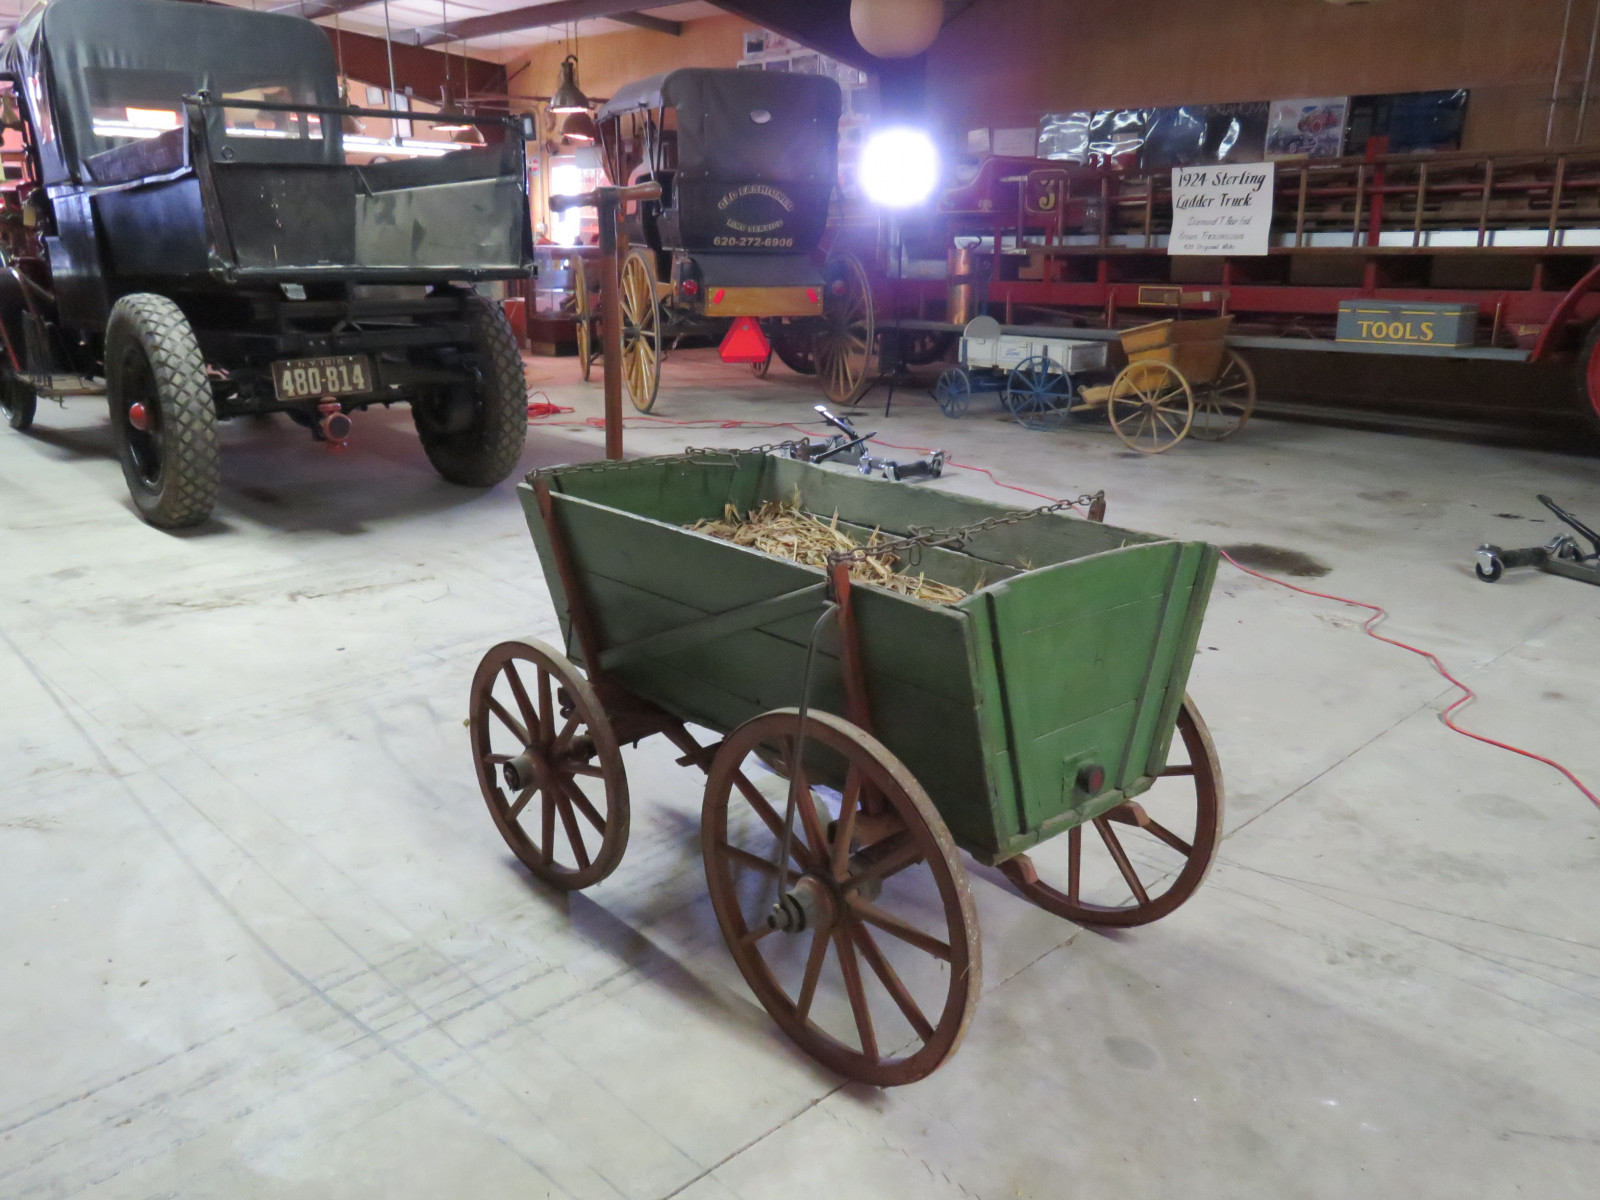 Vintage Wooden Wheel Wagon - Image 1